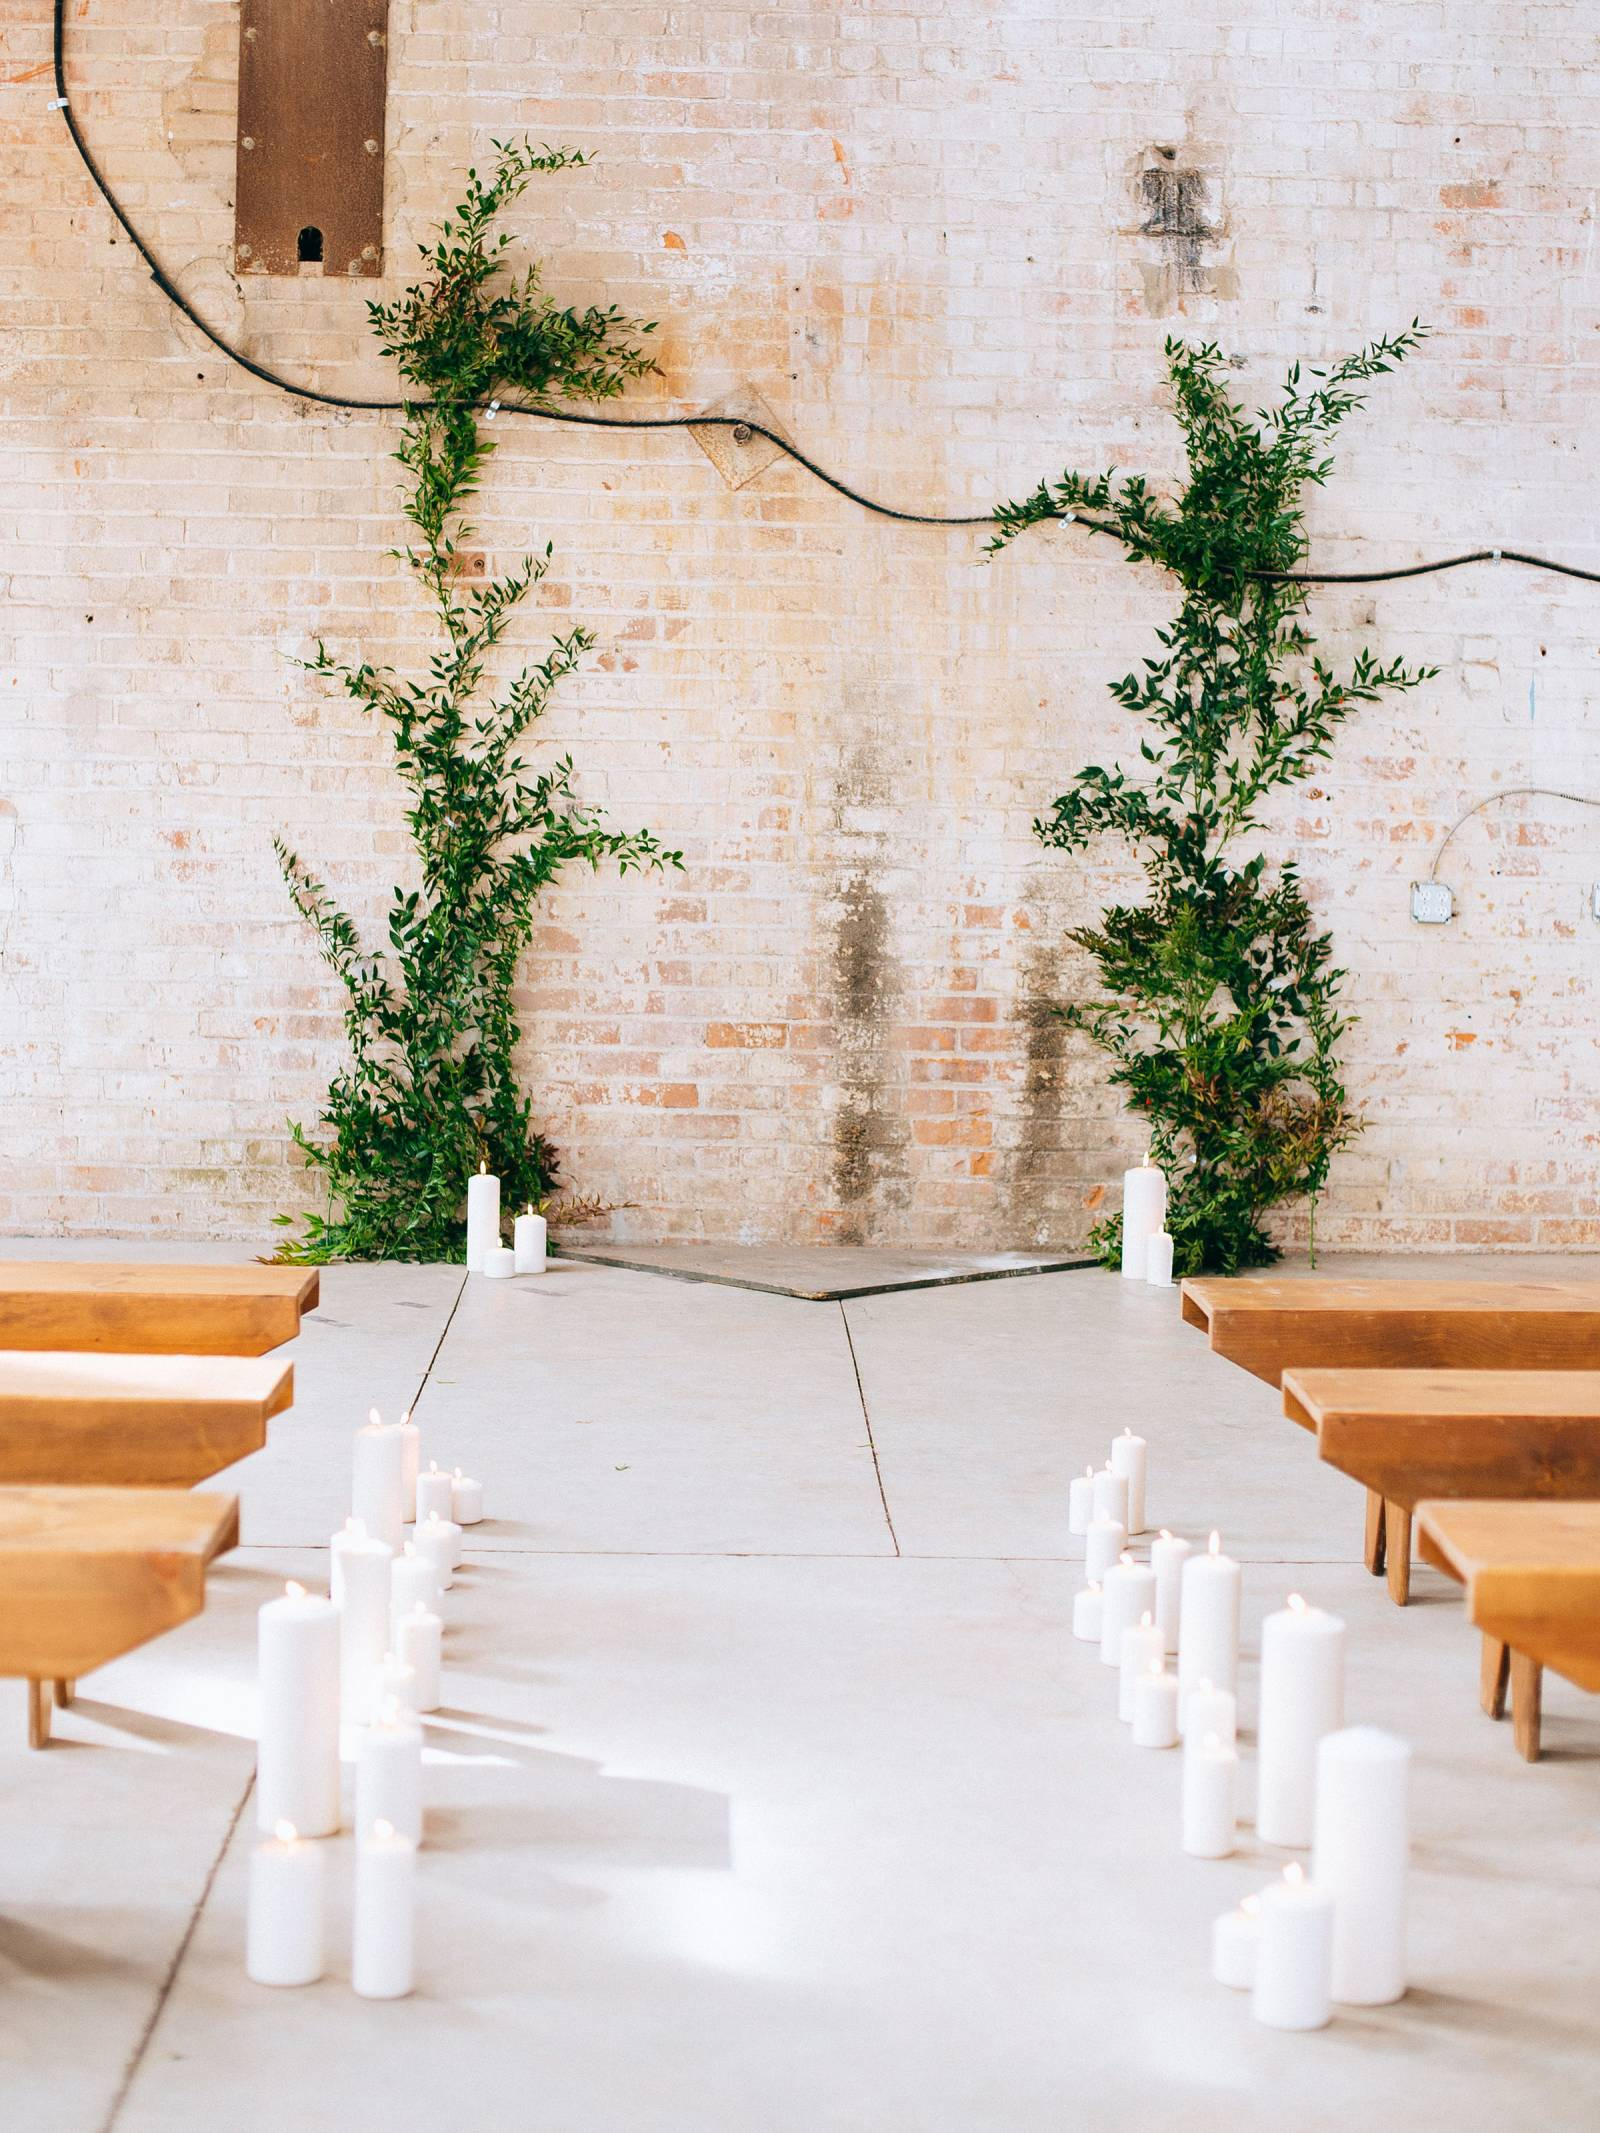 Ceremony aisle flanked with white pillar candles and wood benches and two columns of greenery